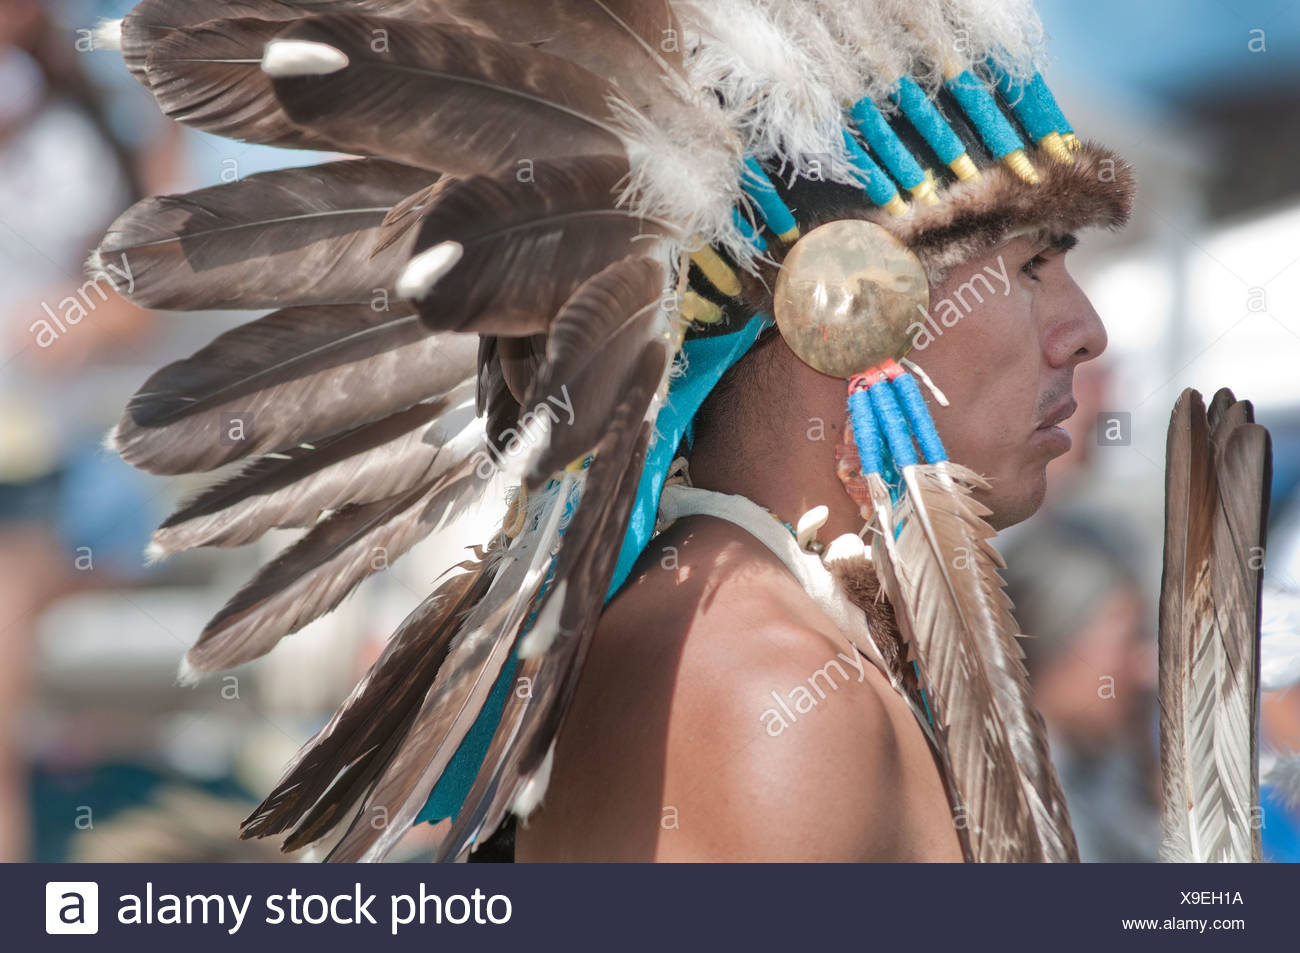 A Native American man from Pendelton Yakama Nation - Stock Image